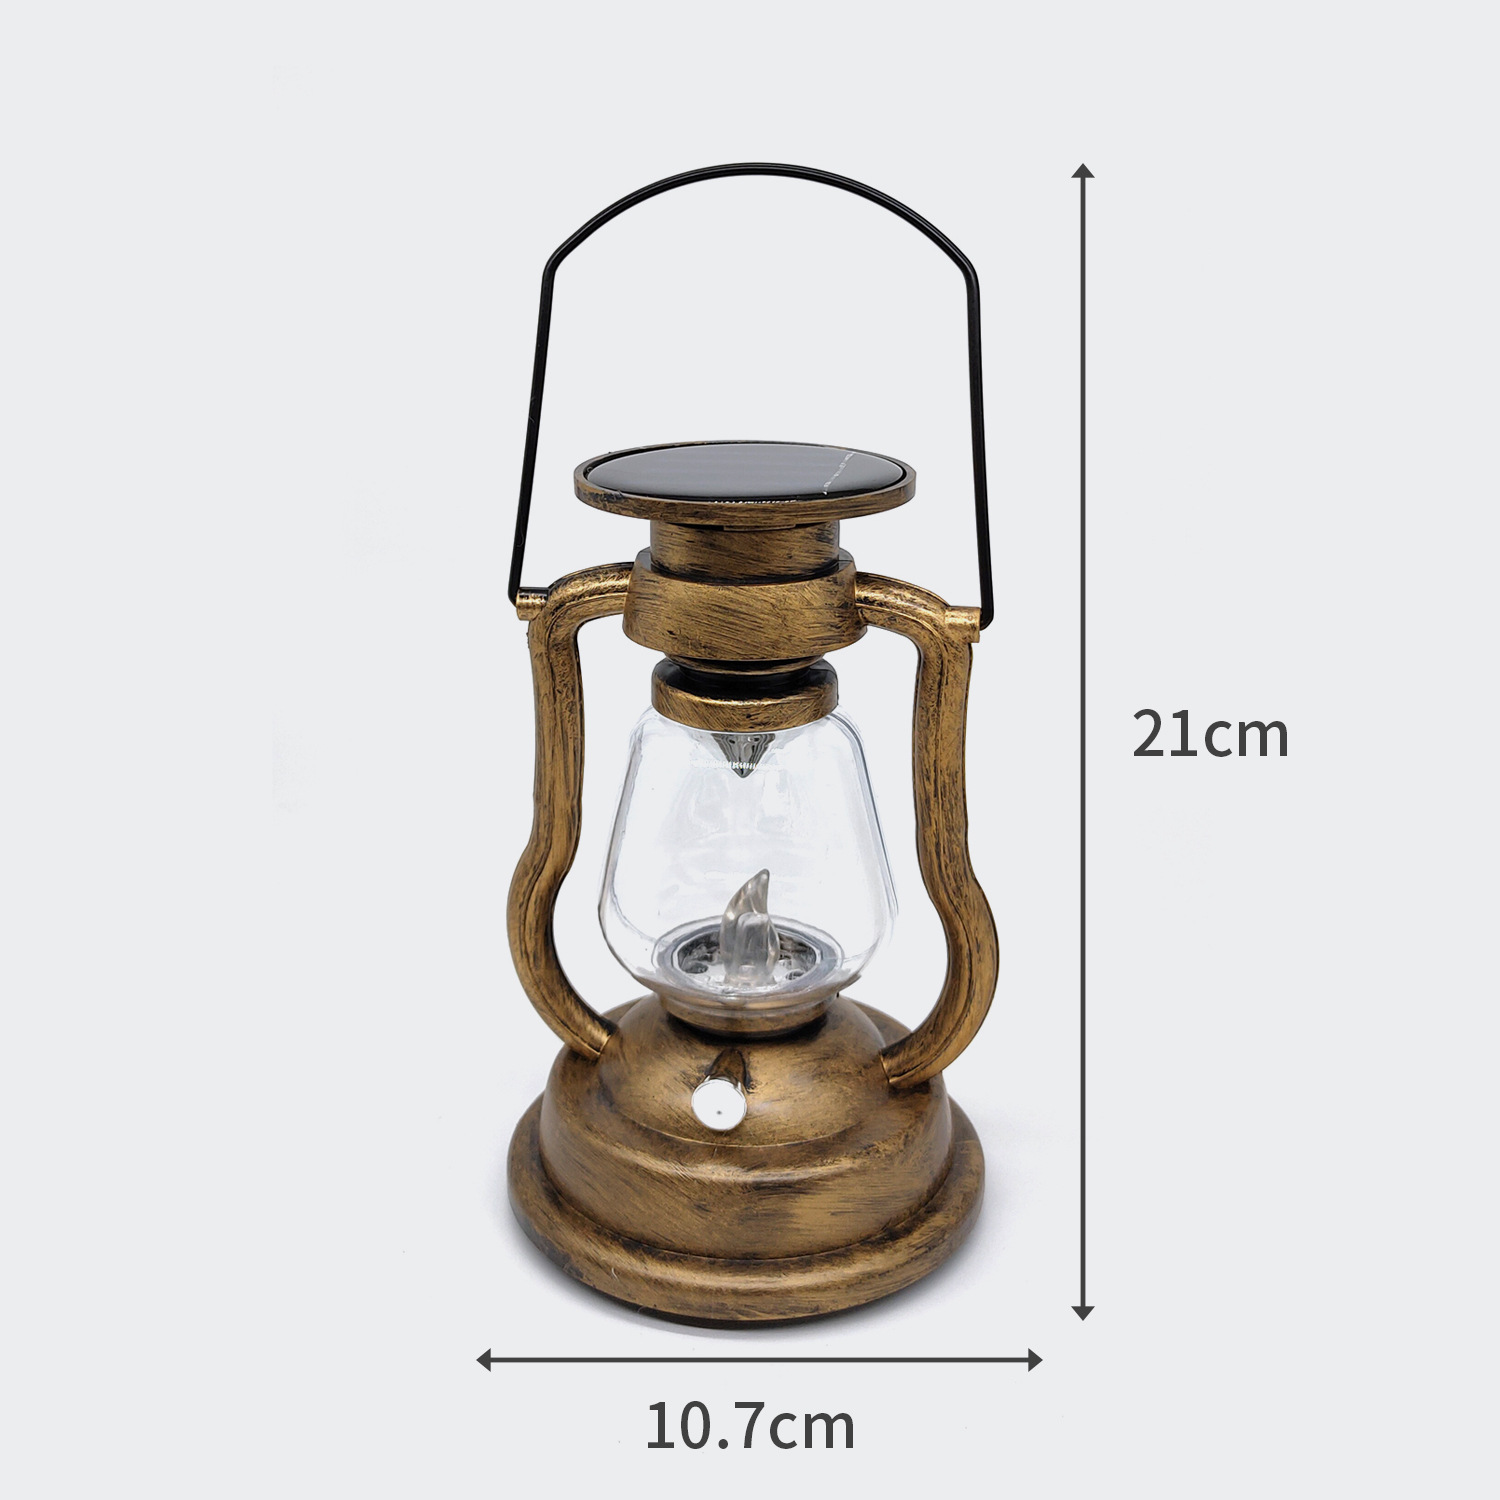 LED solar charger candle light portable tent light outdoor lighting camping retro oil lamp decoratio